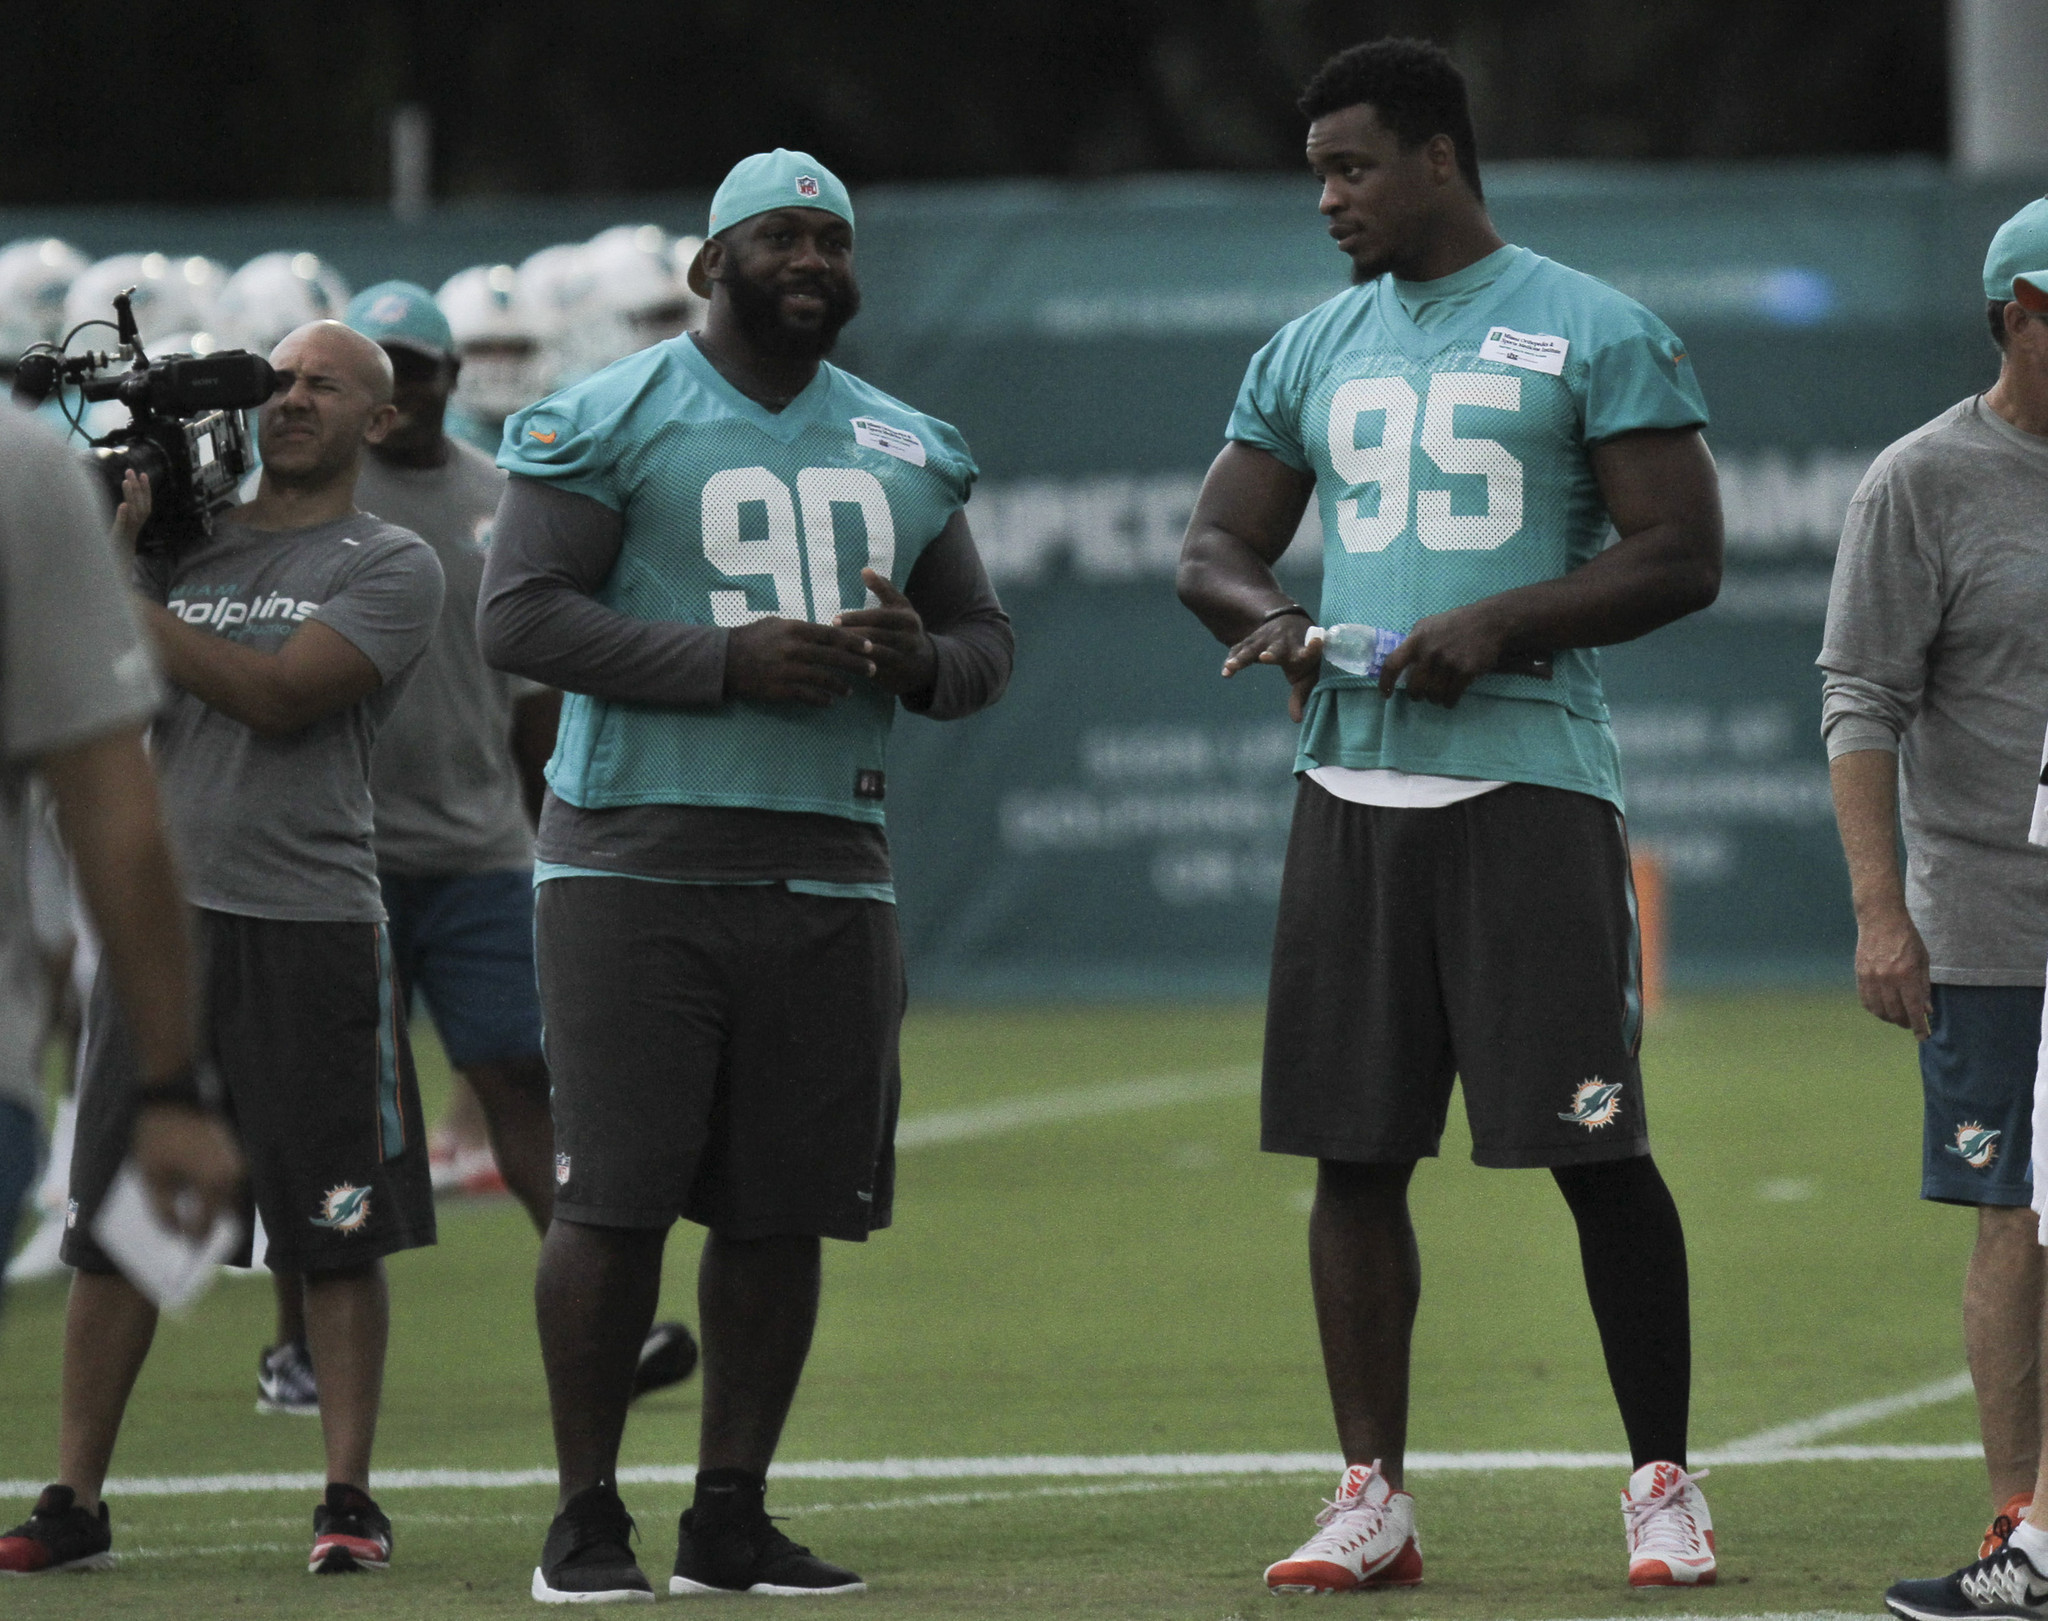 Sfl-dolphins-place-dion-jordan-and-zach-vigil-on-reserve-list-trim-roster-to-75-20160830